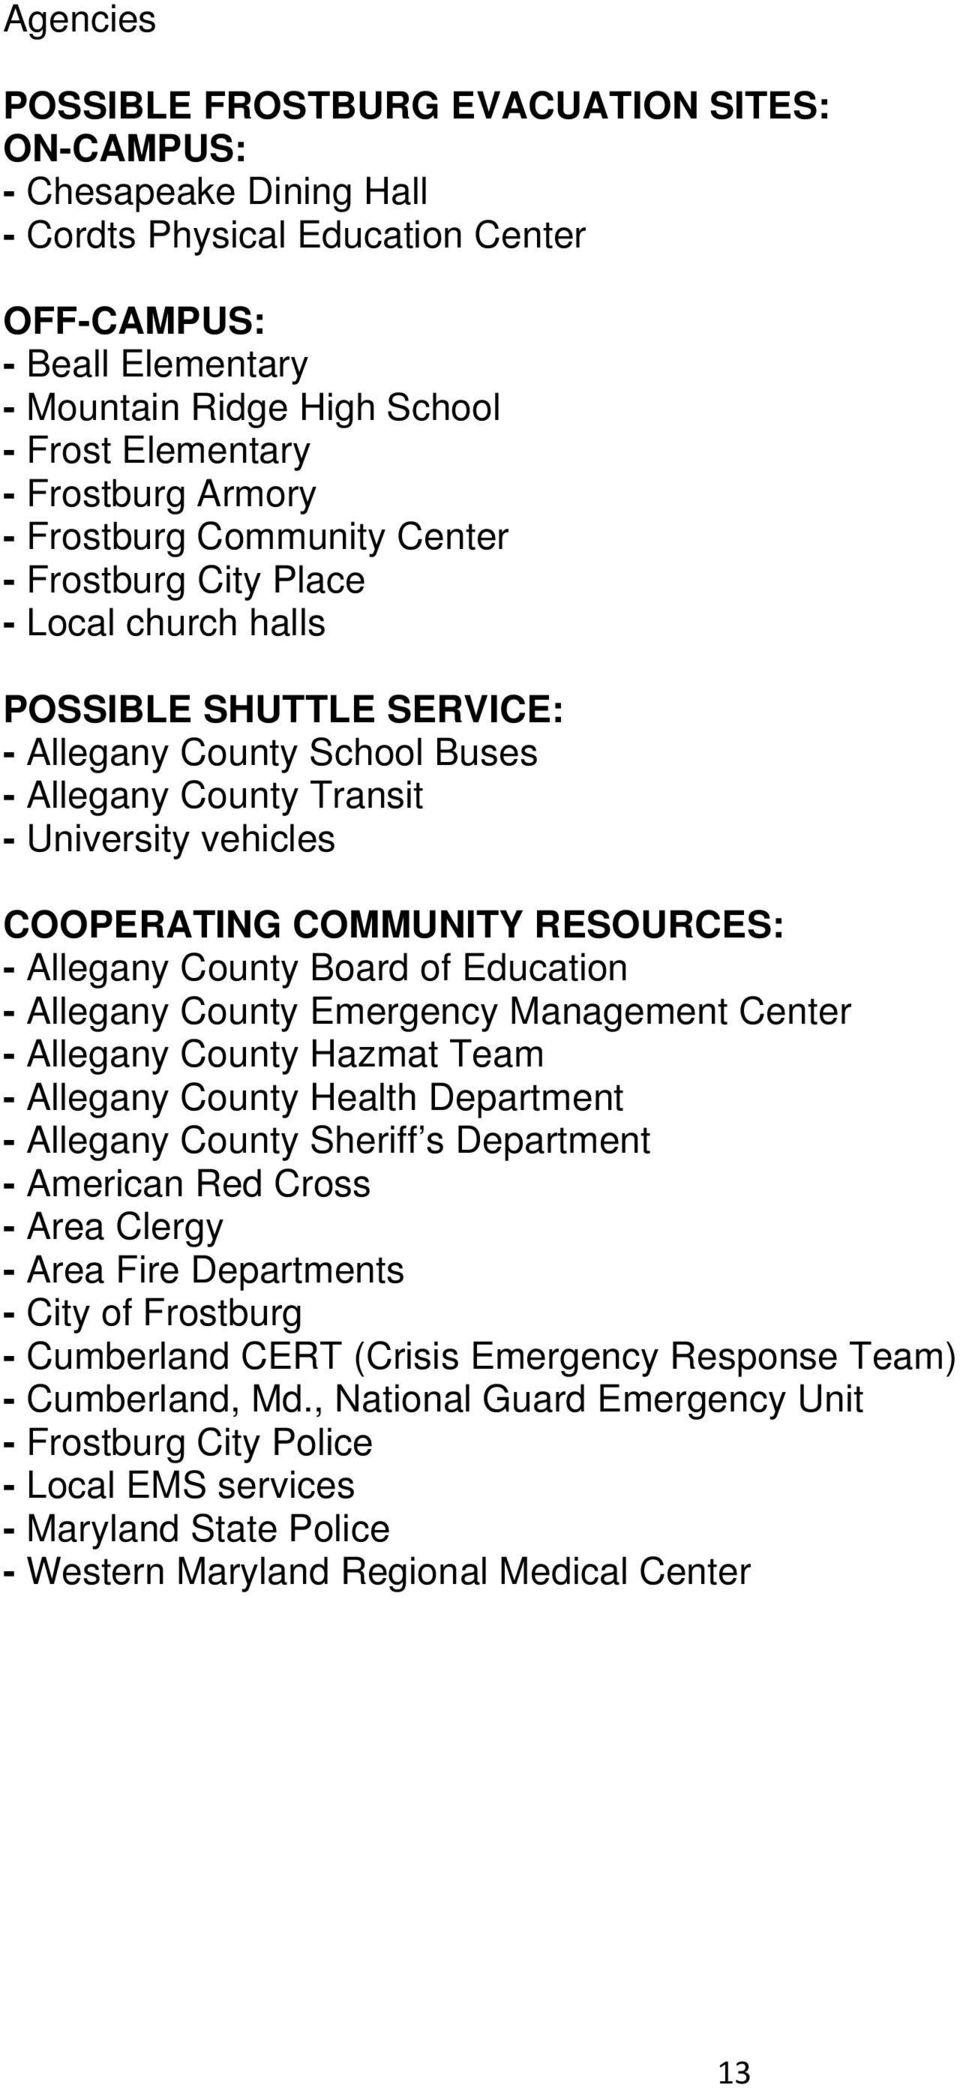 COOPERATING COMMUNITY RESOURCES: - Allegany County Board of Education - Allegany County Emergency Management Center - Allegany County Hazmat Team - Allegany County Health Department - Allegany County